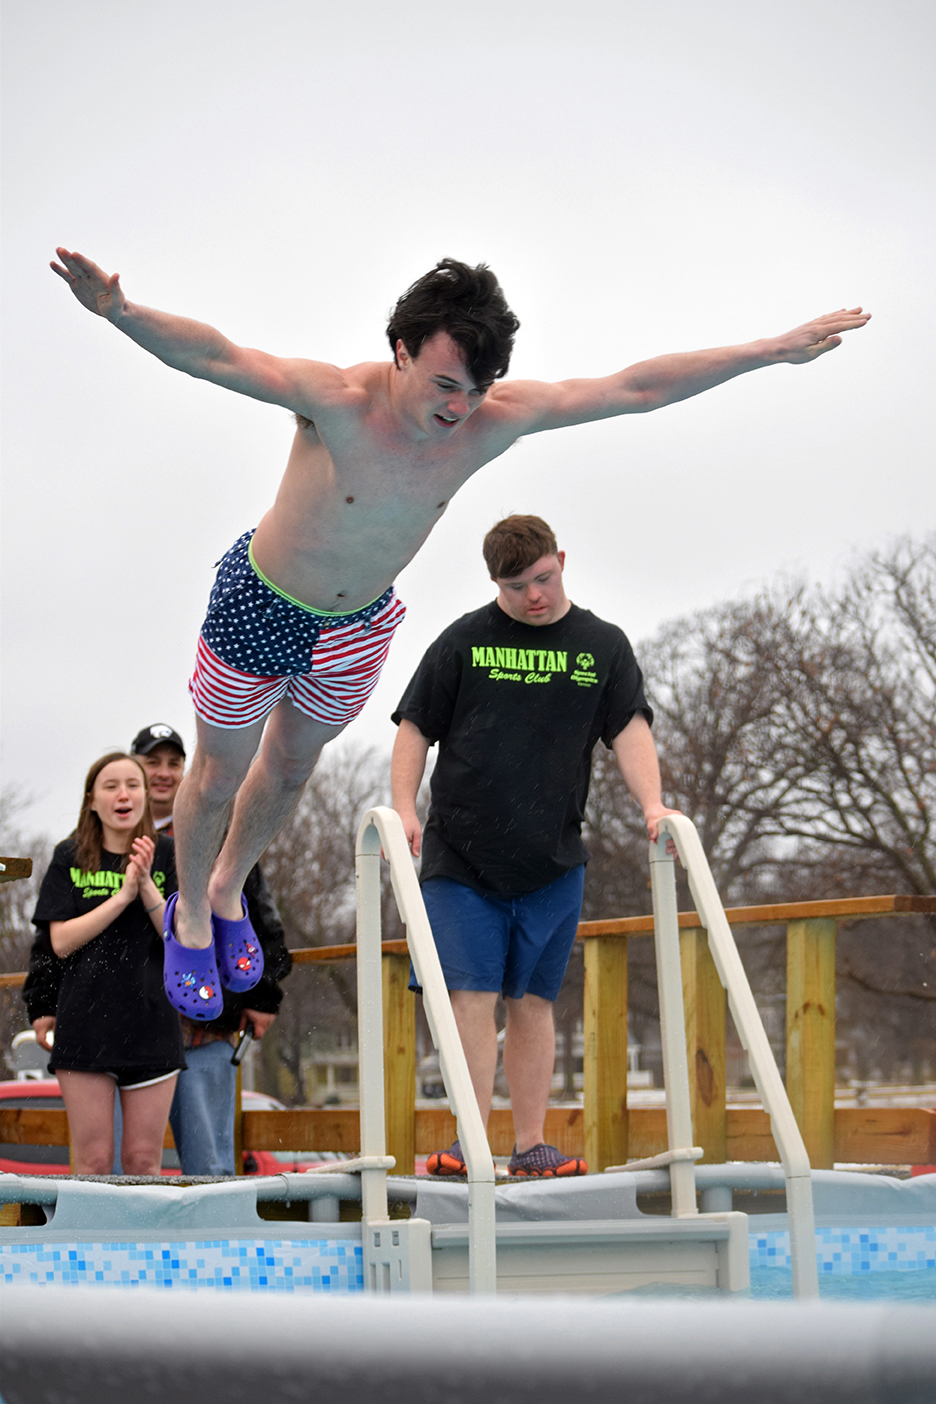 Senior Max Landsdowne belly flops into the ice-cold water during the polar plunge event on Feb. 23. Many MHS students participated in the plunge this year, the event raised money and awareness for the special olympics.